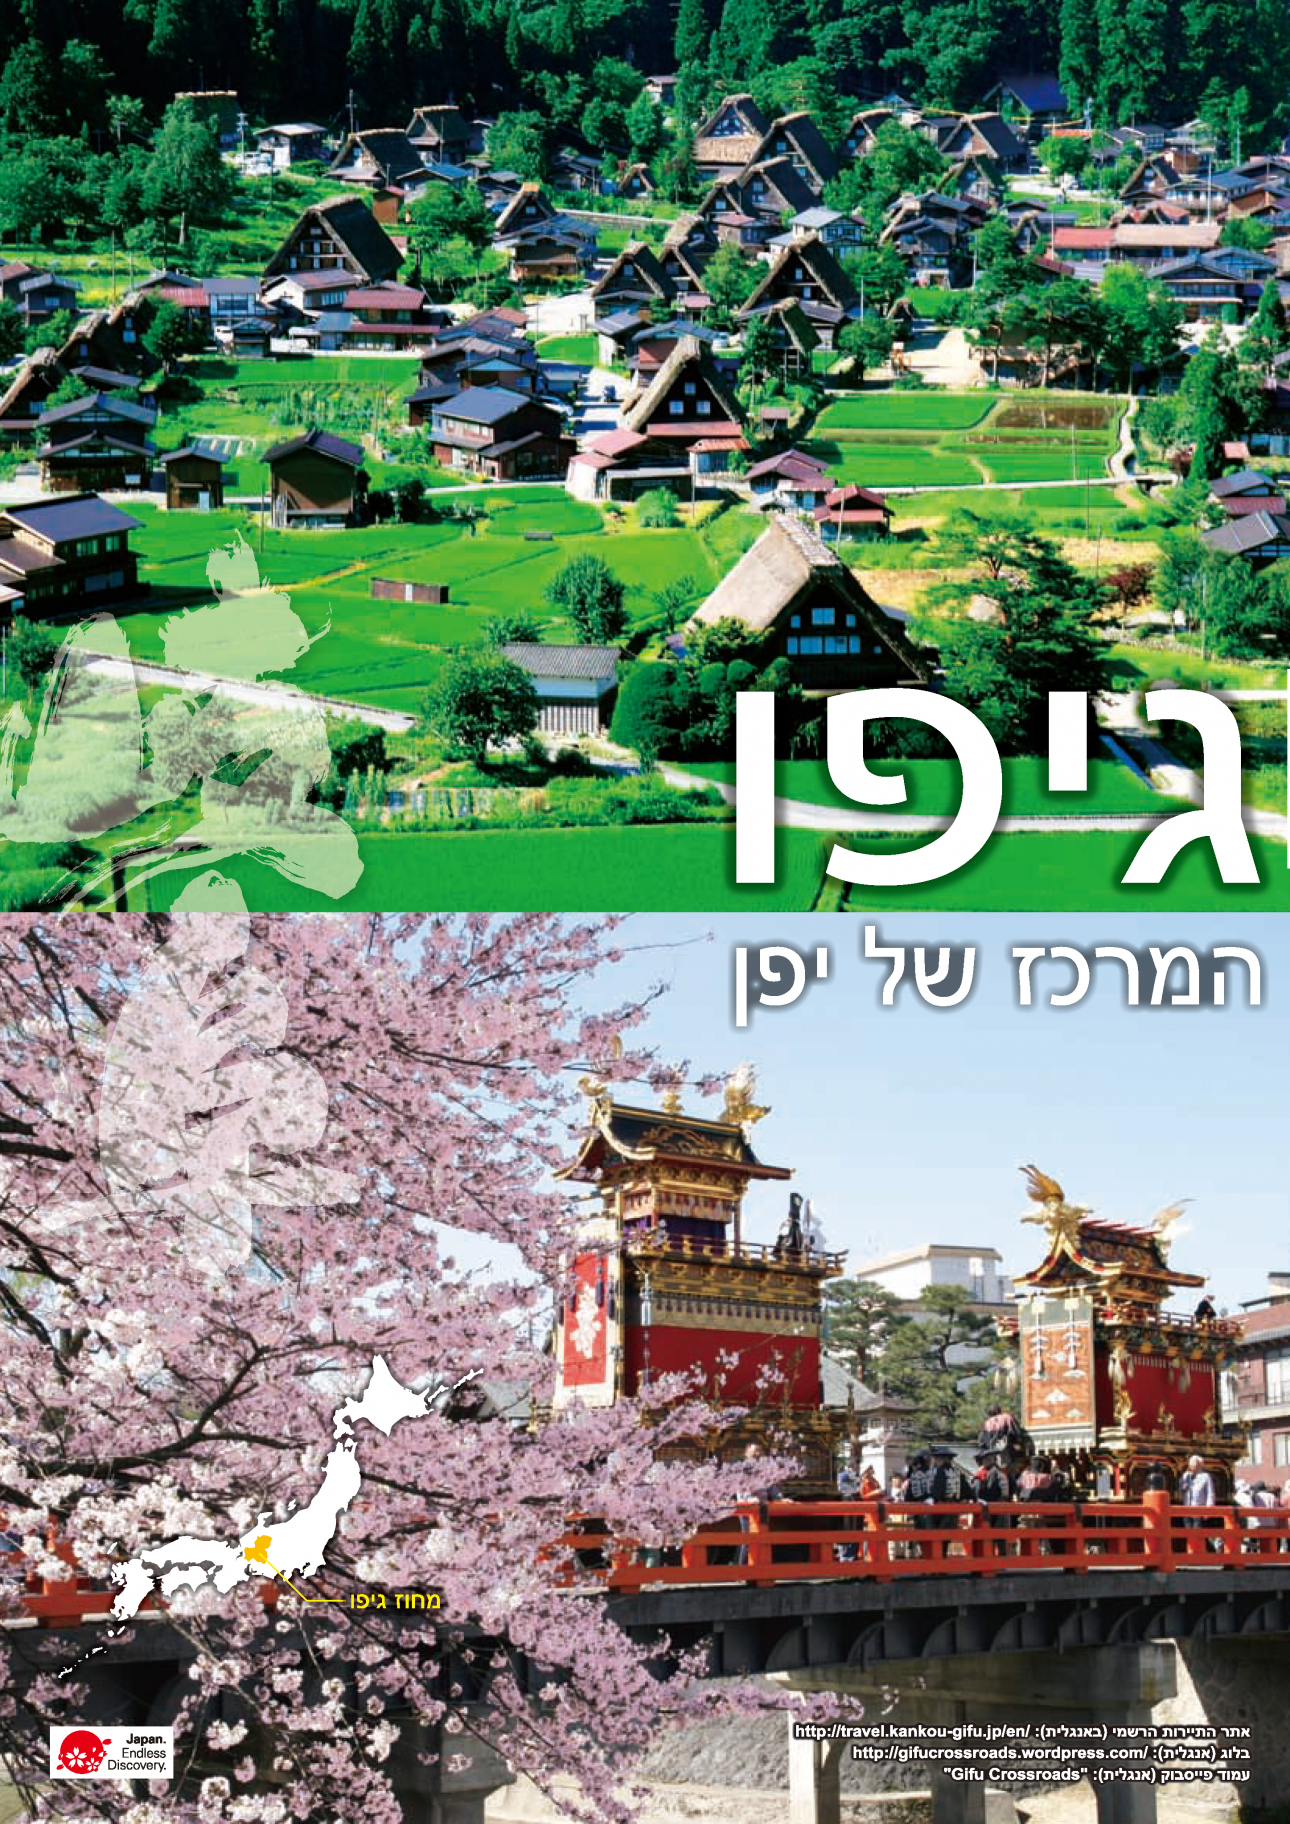 GIFU The Heartland of Japan (Hebrew)